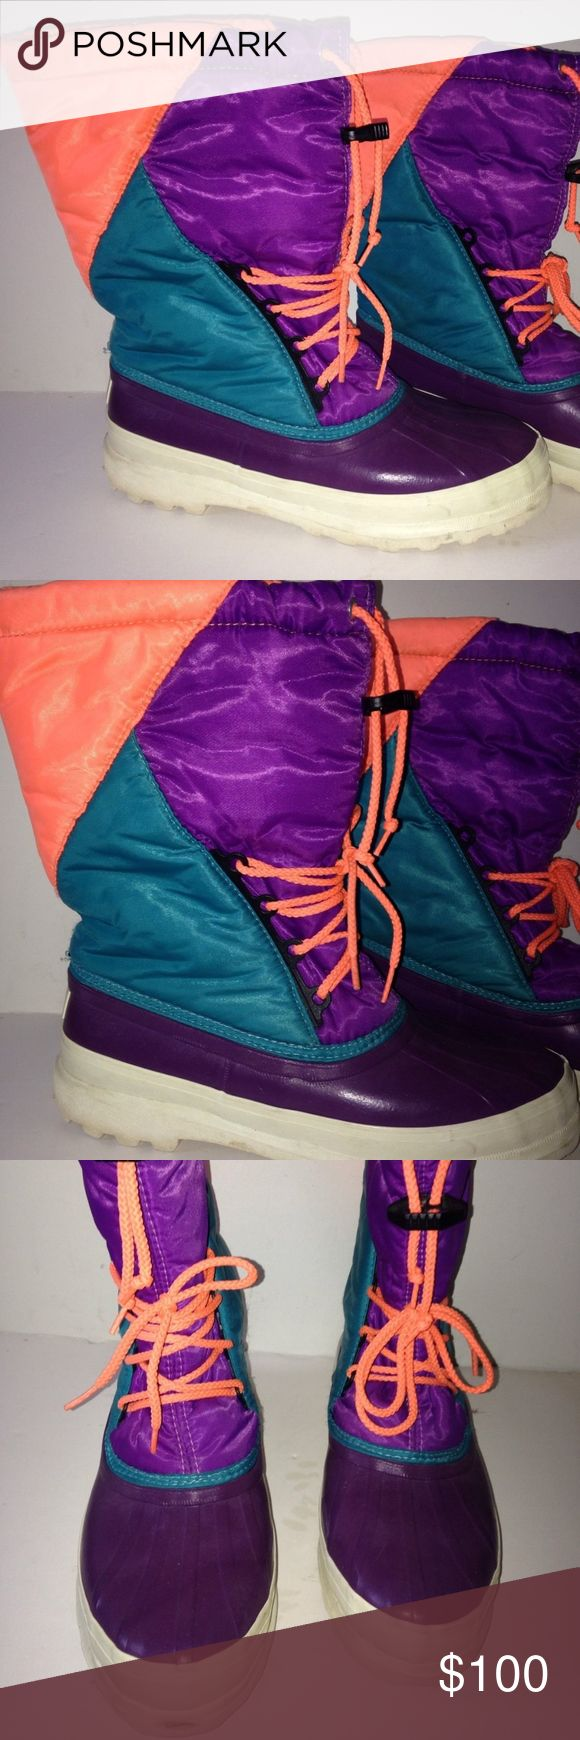 VTG SOREL WINTER BOOTS SZ 9 OLD SCHOOL PAIR OF SOREL WINTER BOOTS MADE IN CANADA  WOMEN SIZE 9  NEON ORANGE, PURPLE & TEAL COLORS REMOVABLE LINER ONLY WORN A FEW TIMES, EXCELLENT CONDITION I'VE NEVER SEEN ANOTHER PAIR LIKE THAT REALLY COOL LOOKING BOOTS! Sorel Shoes Winter & Rain Boots